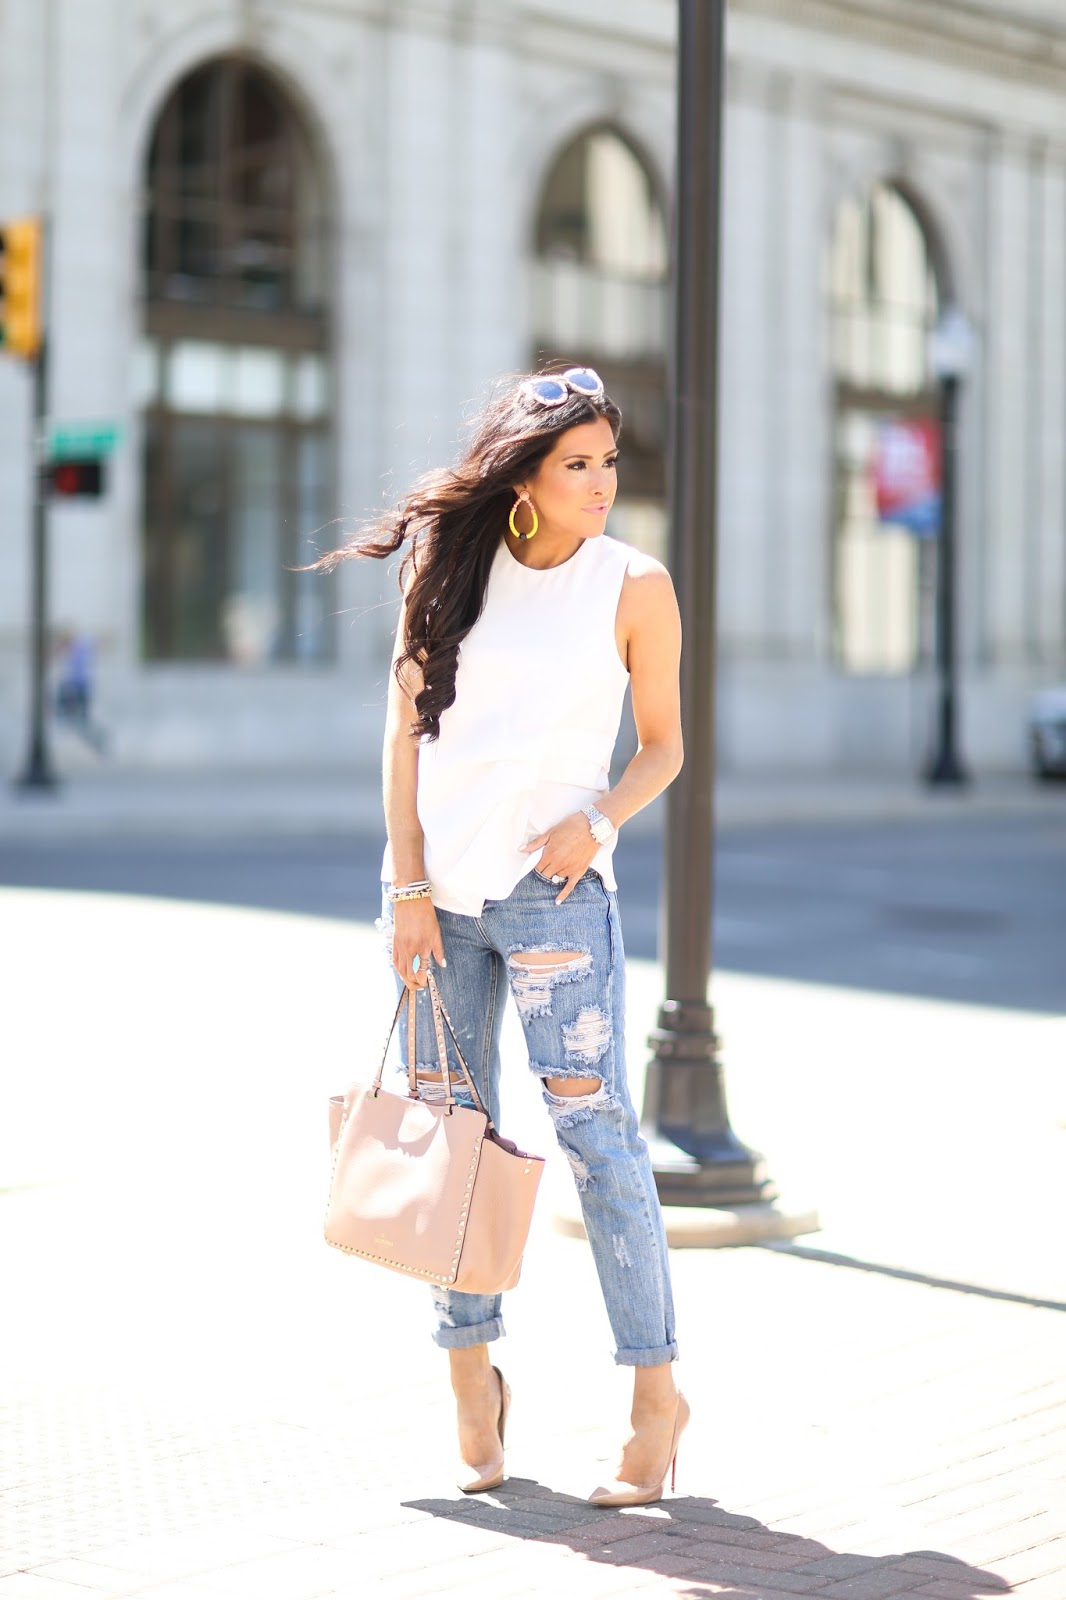 Boyfriend Jeans   Louboutins – The Sweetest Thing